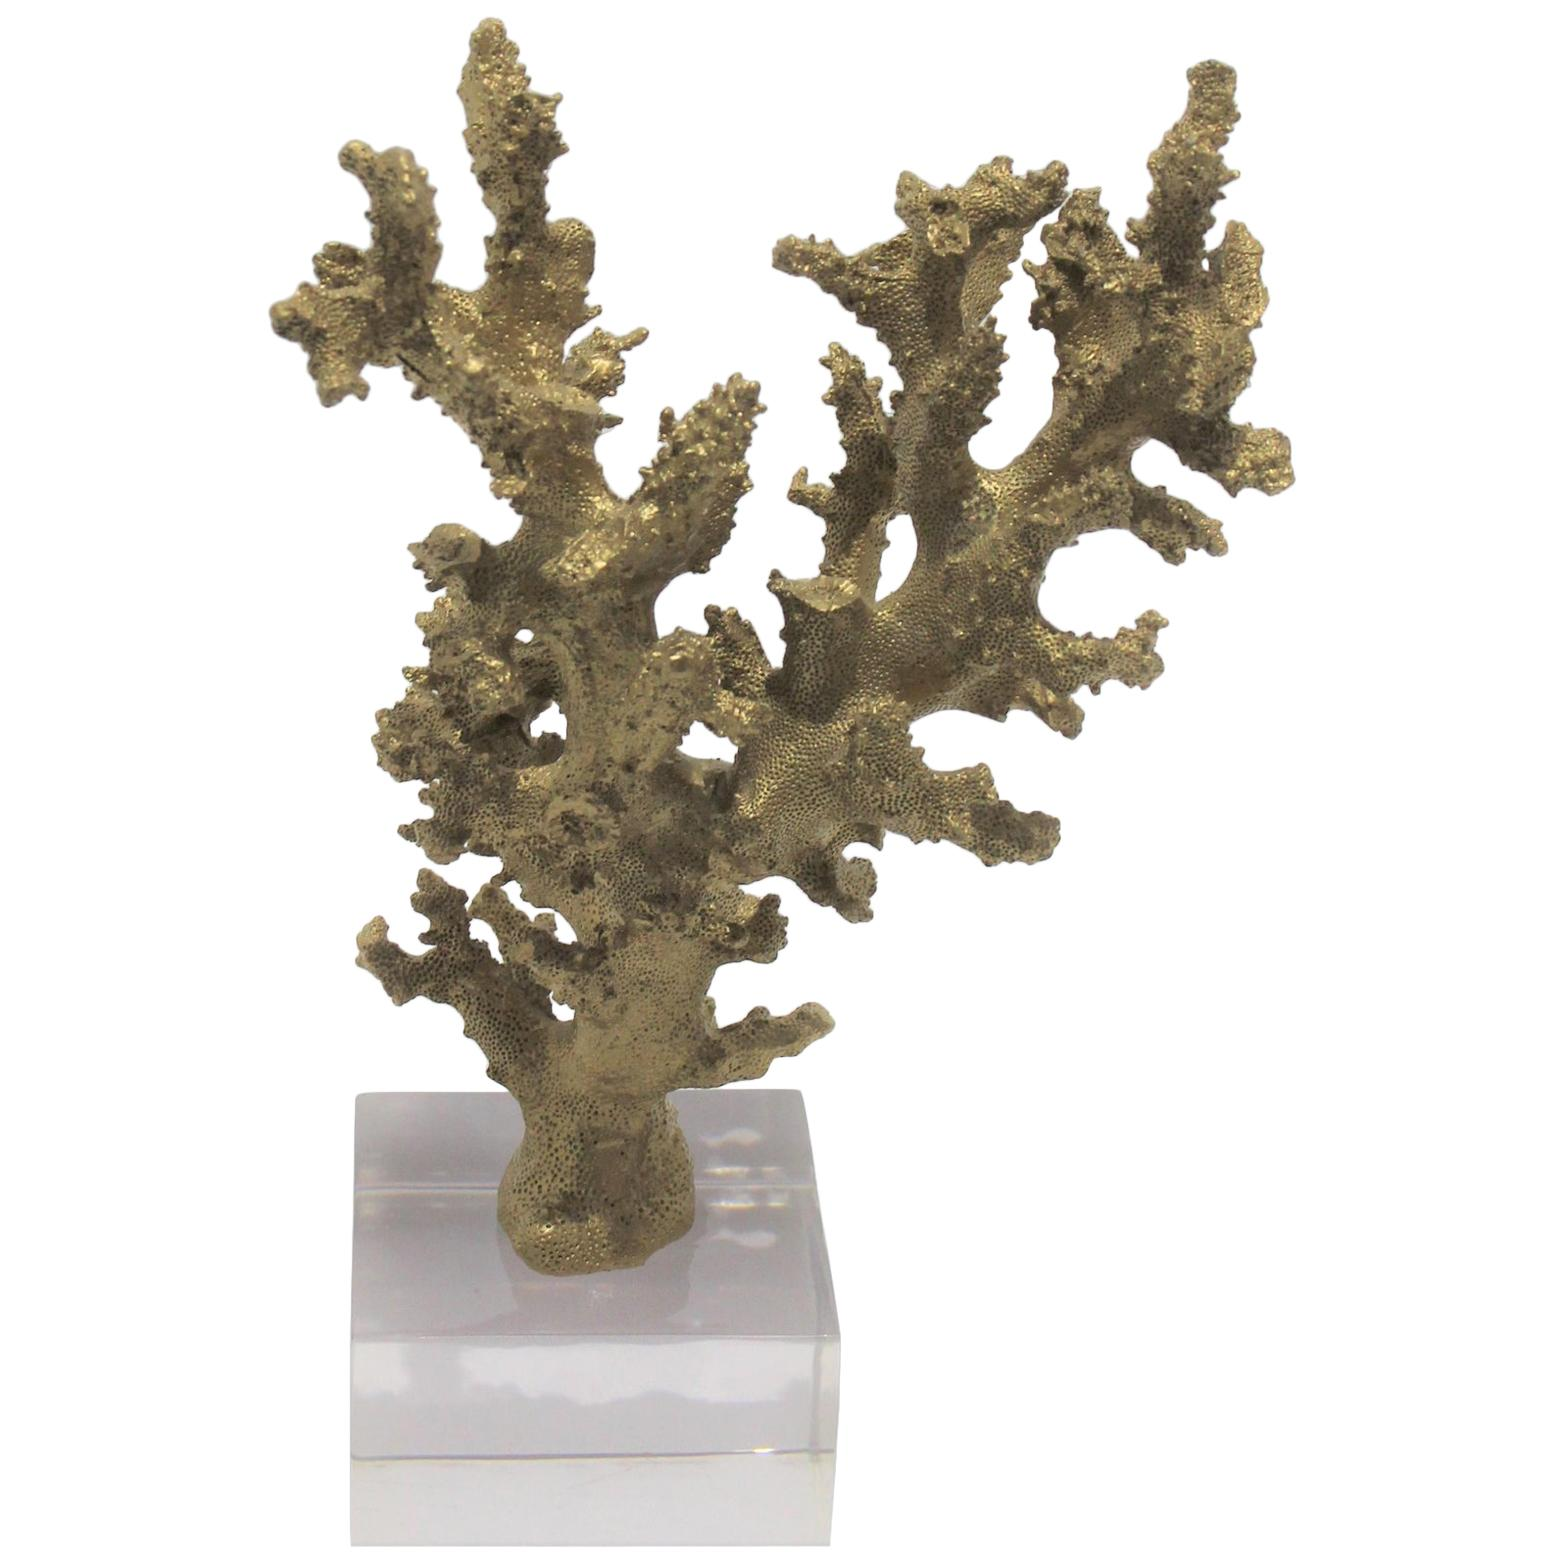 Faux Coral Speciman on a Lucite Base